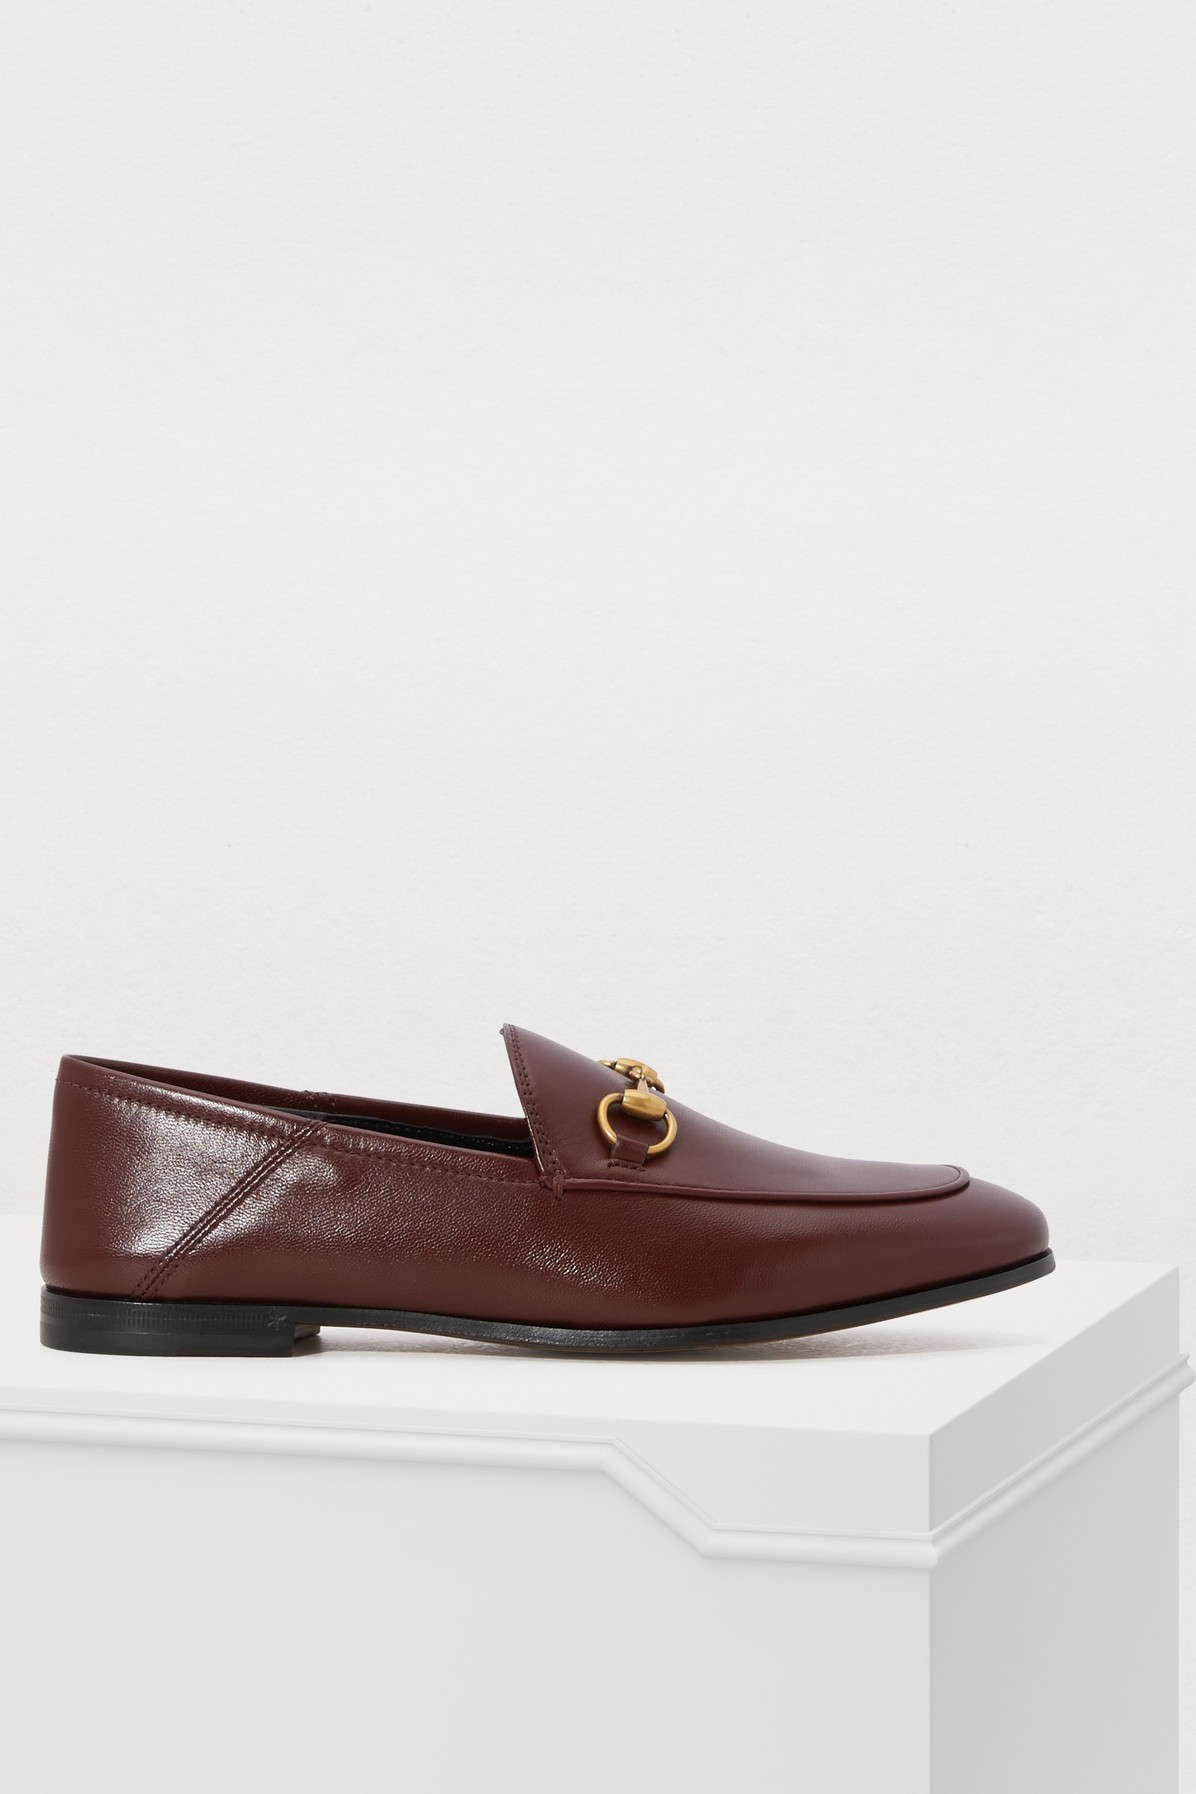 d0bca6d05ba Gucci - Brixton Horsebit-detailed Leather Collapsible-heel Loafers ...